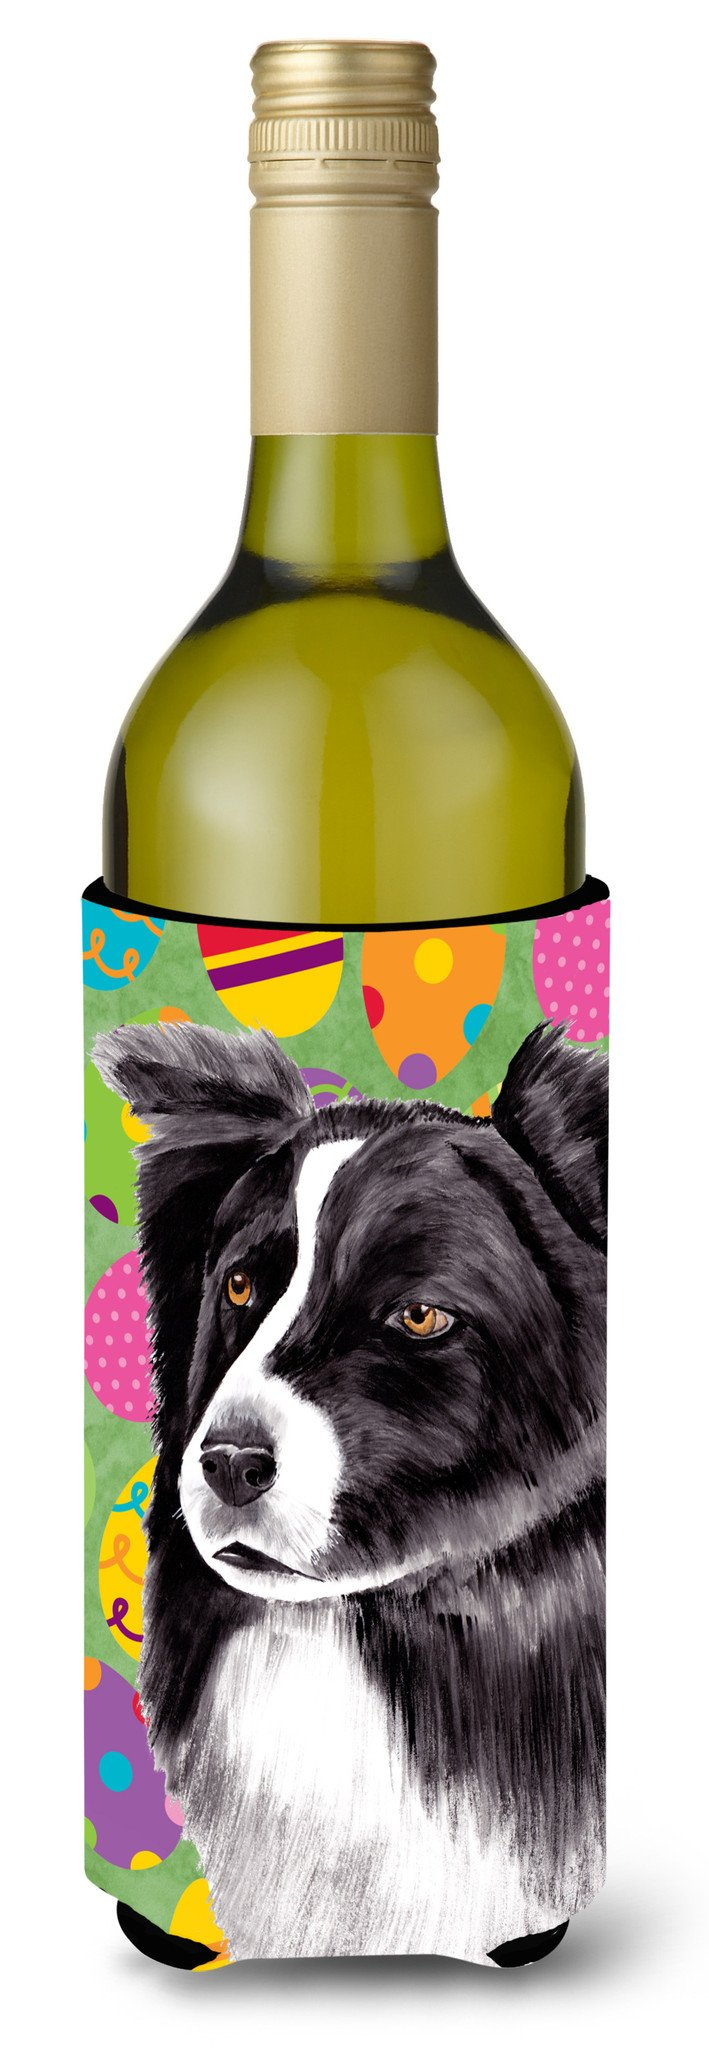 Border Collie Easter Eggtravaganza Wine Bottle Beverage Insulator Beverage Insulator Hugger by Caroline's Treasures